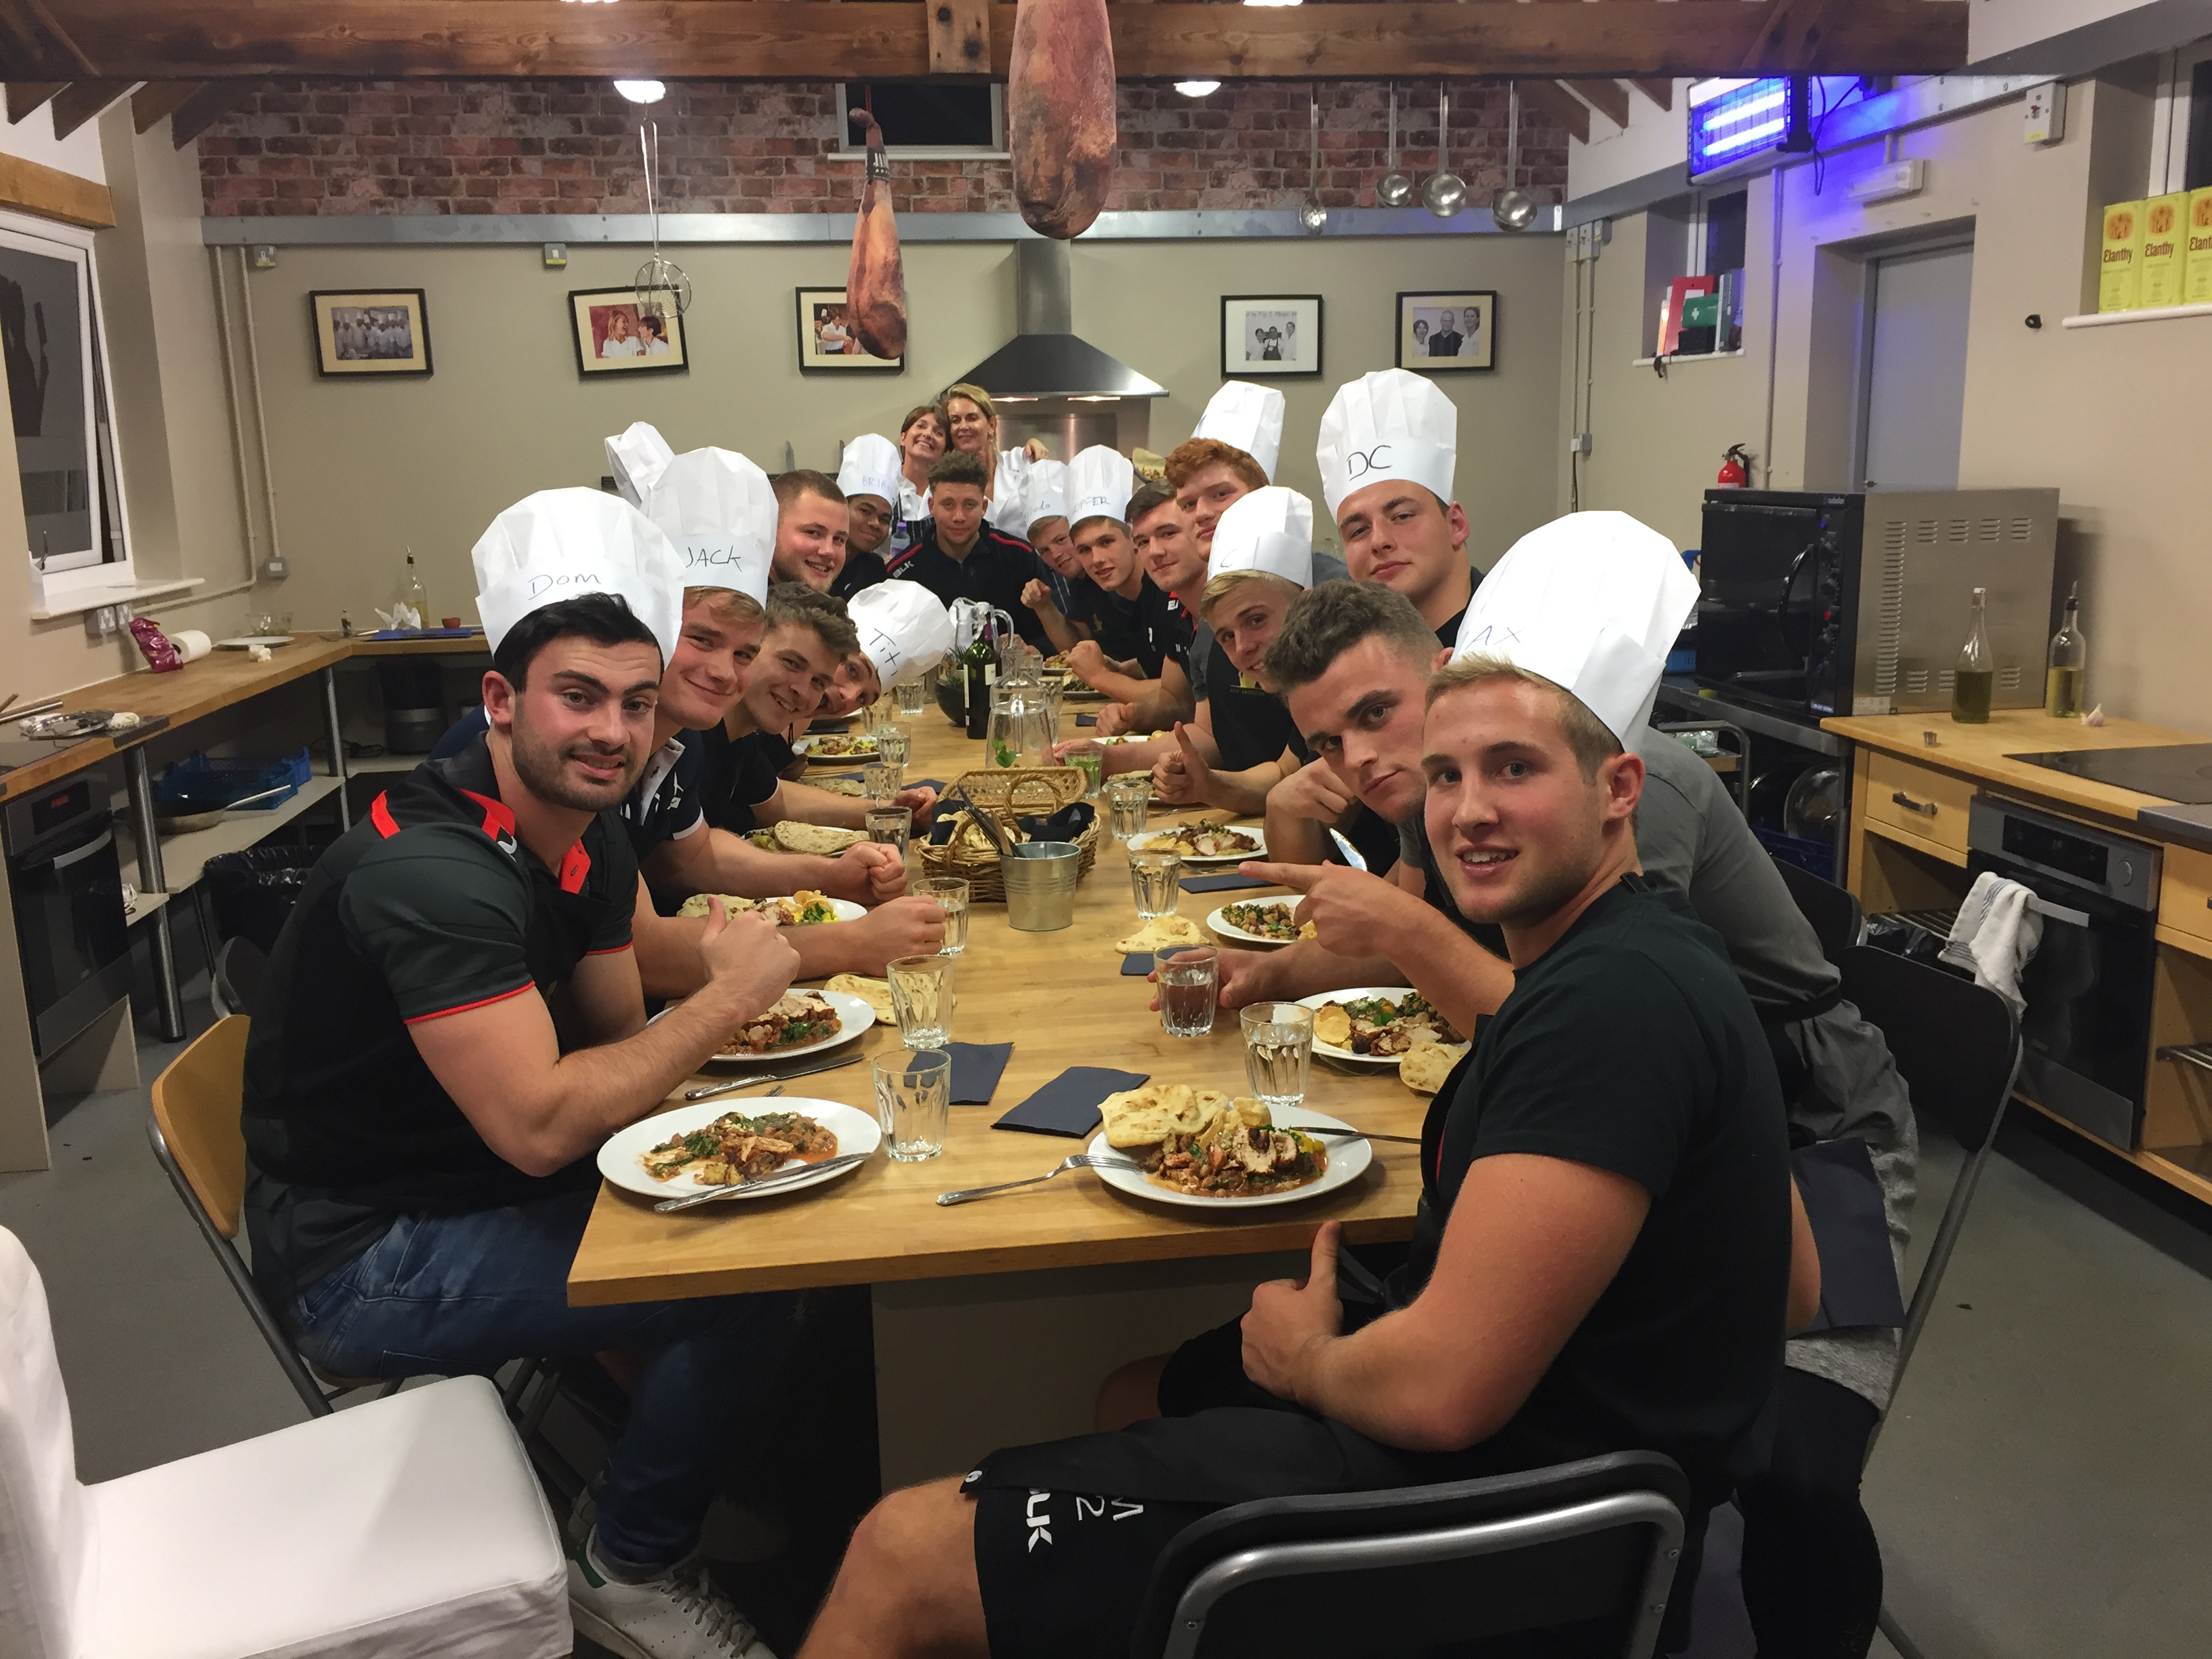 SARACENS AT THE TABLE